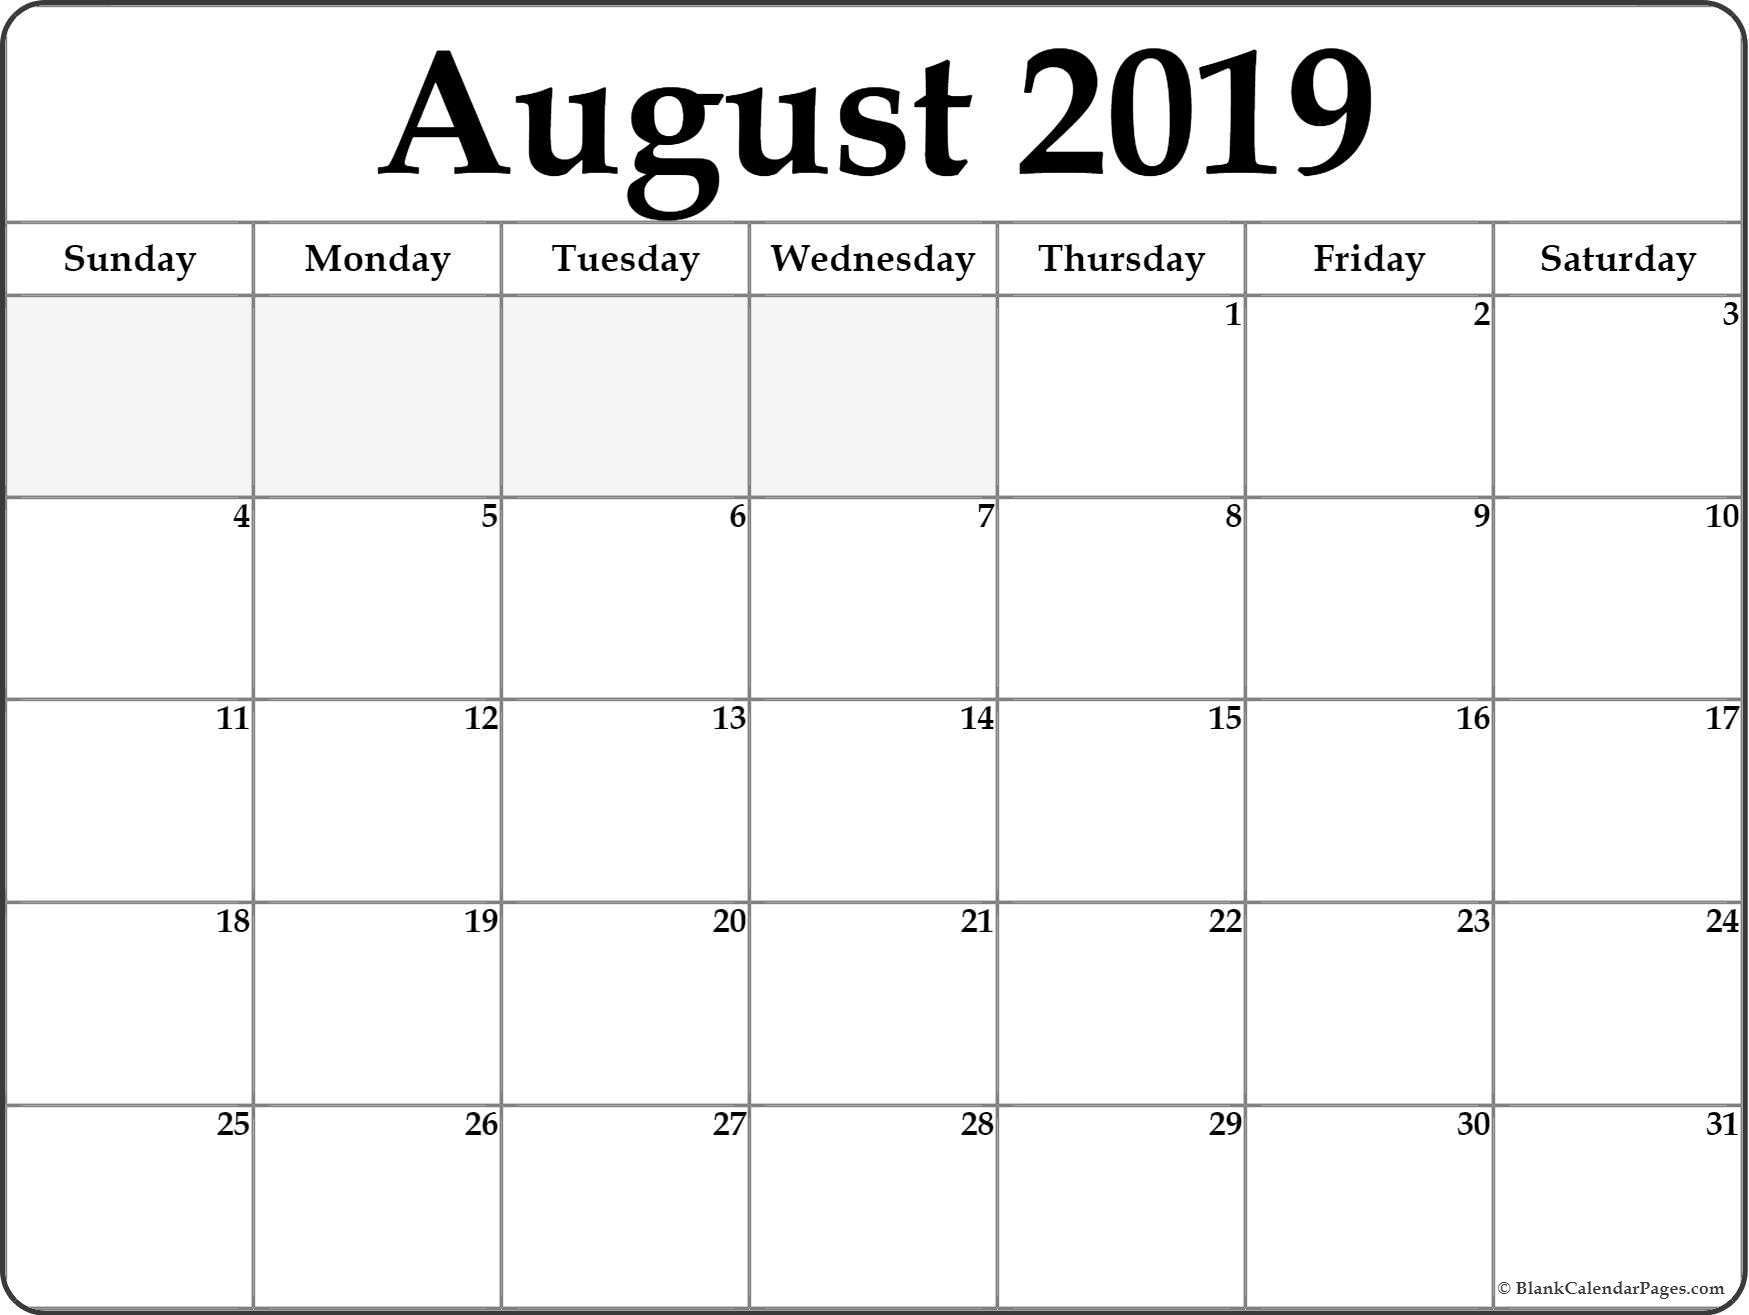 August 2019 Calendar | Free Printable Monthly Calendars with Printable Blank Calendar August